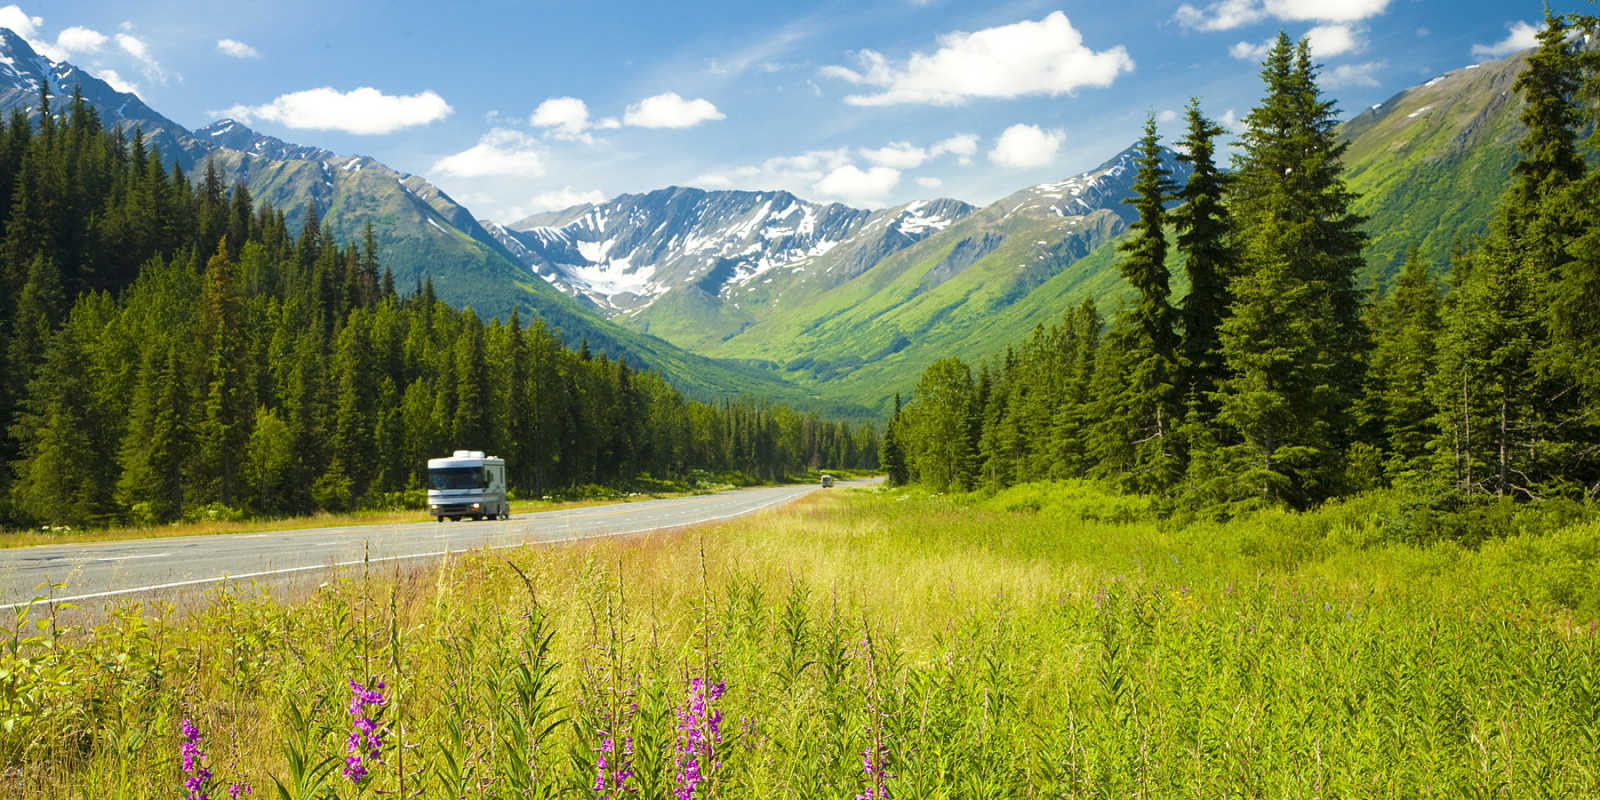 Ask Fodor's: Best Scenic Drives and Rail Trips in Spain? | Fodor's ...